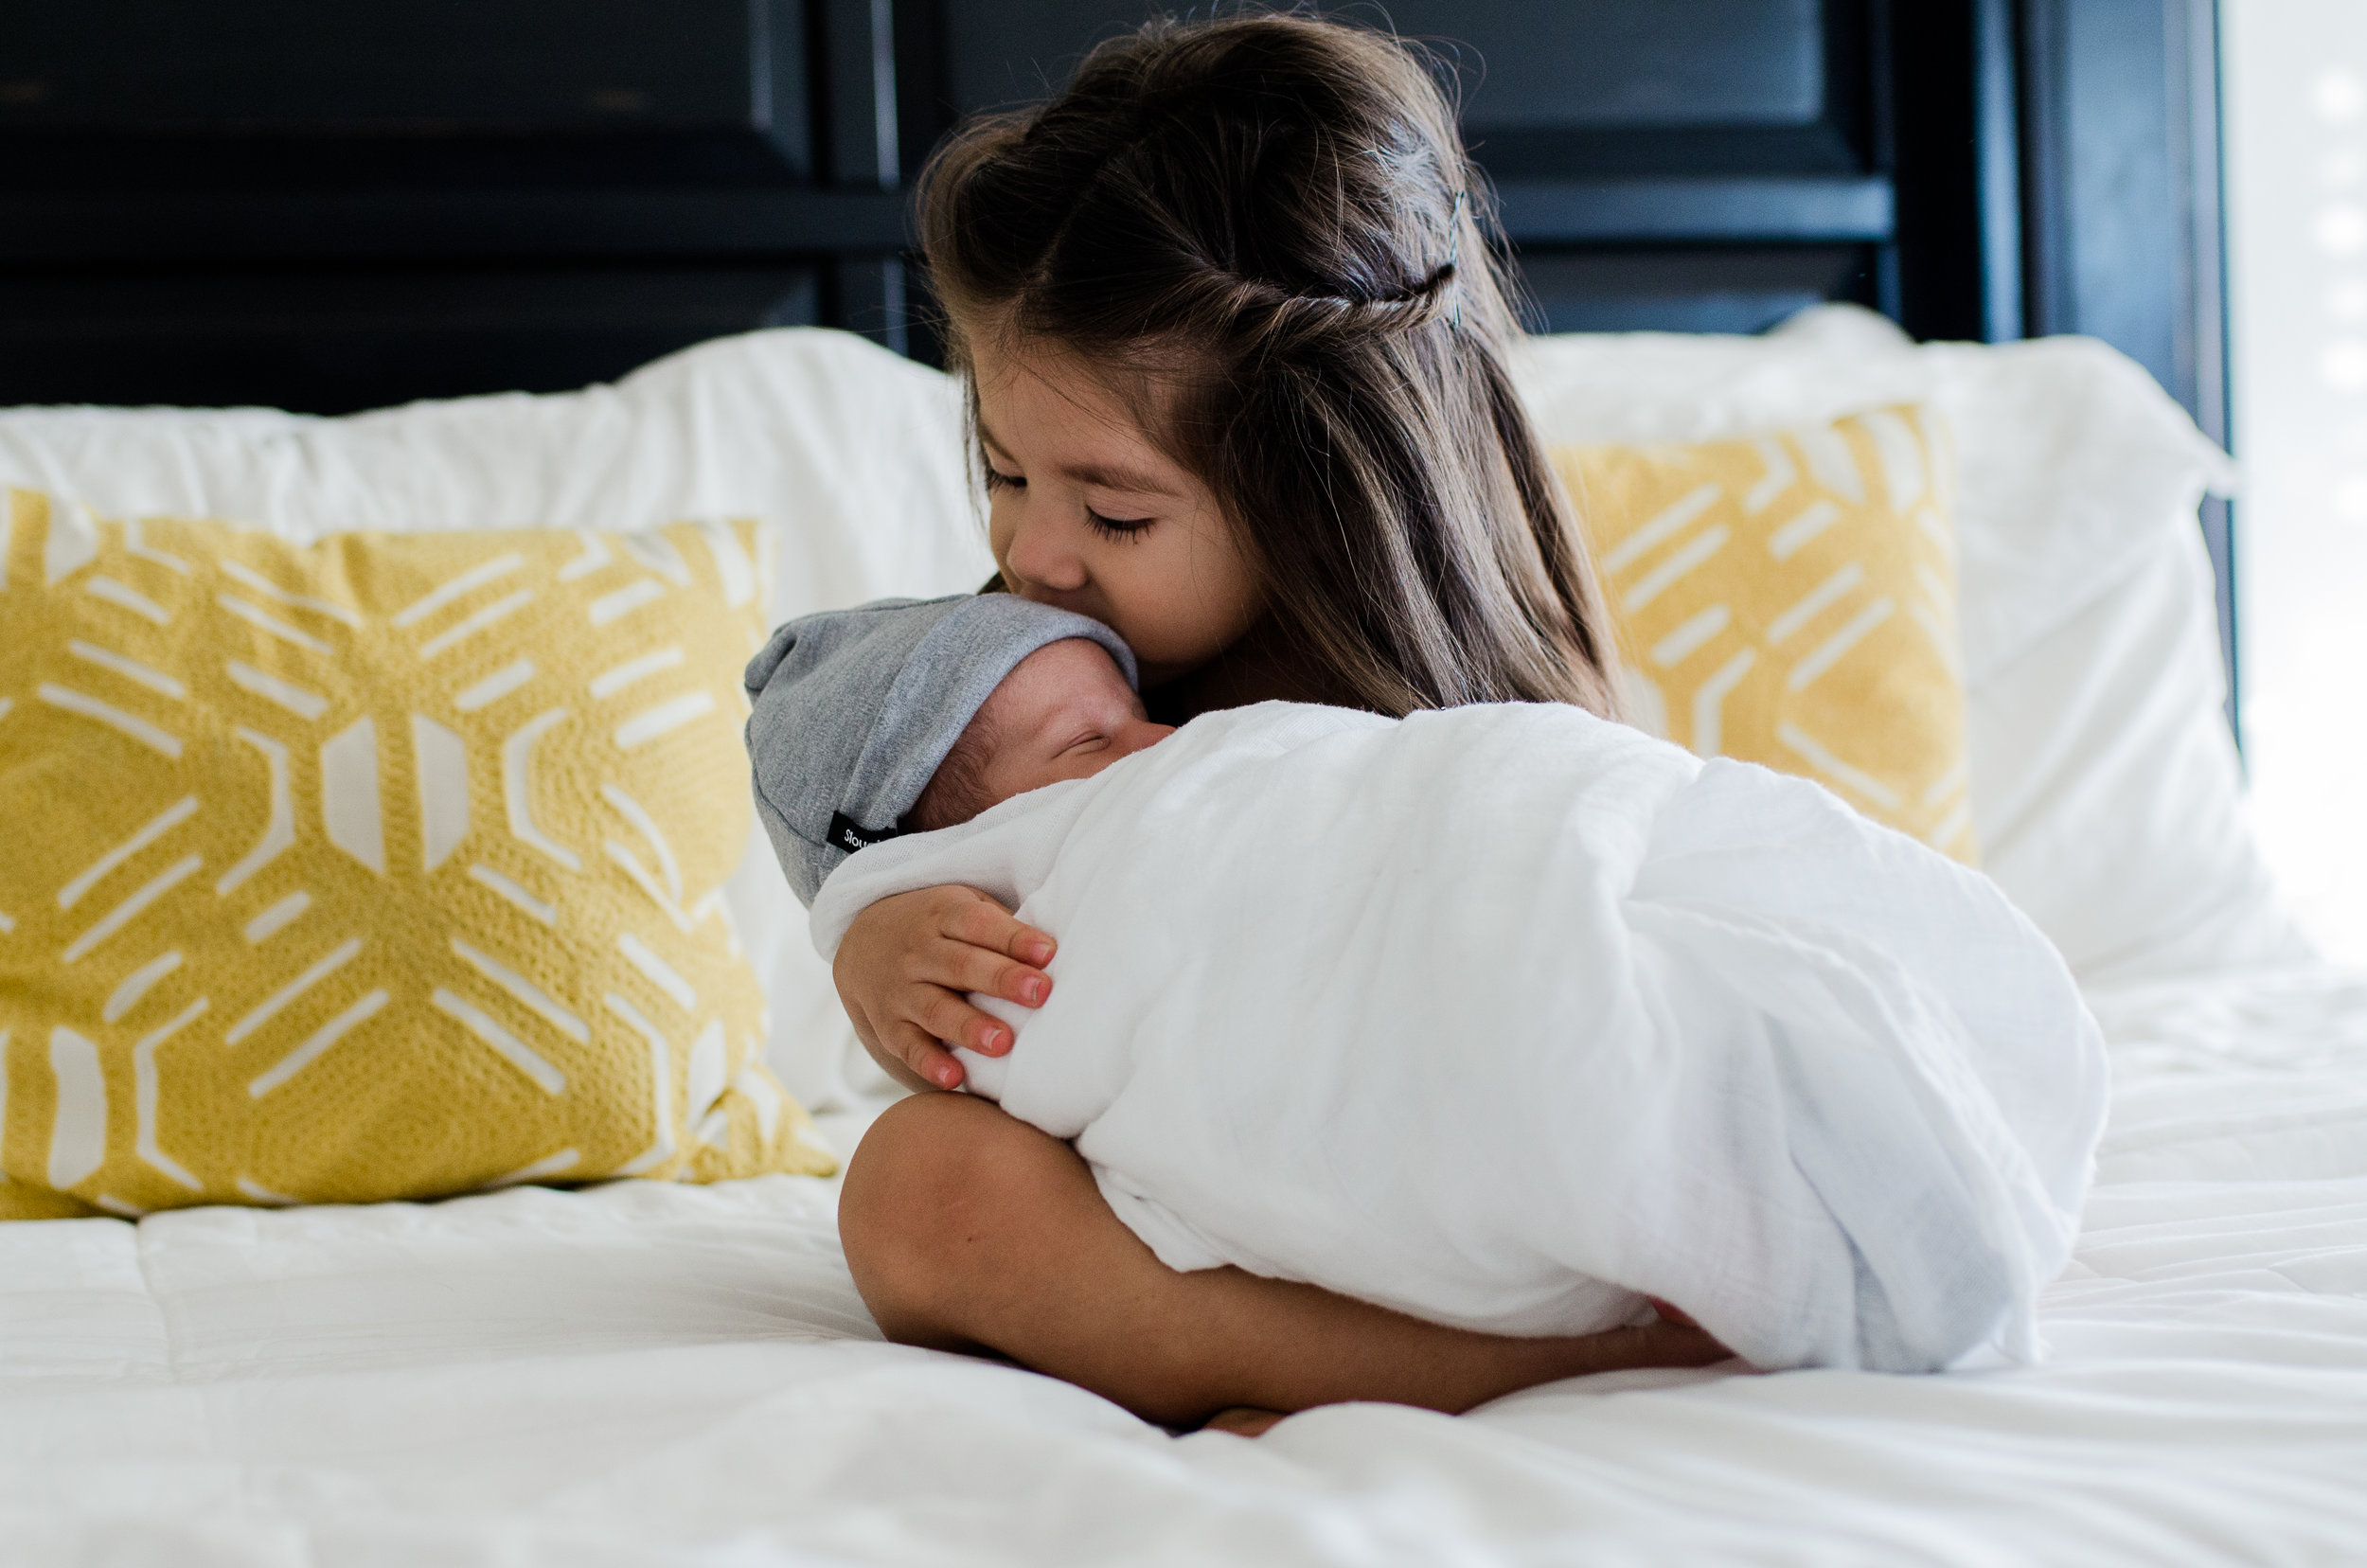 Scottsdale, AZ In-home Lifestyle Newborn Session - Light & Airy Photographer